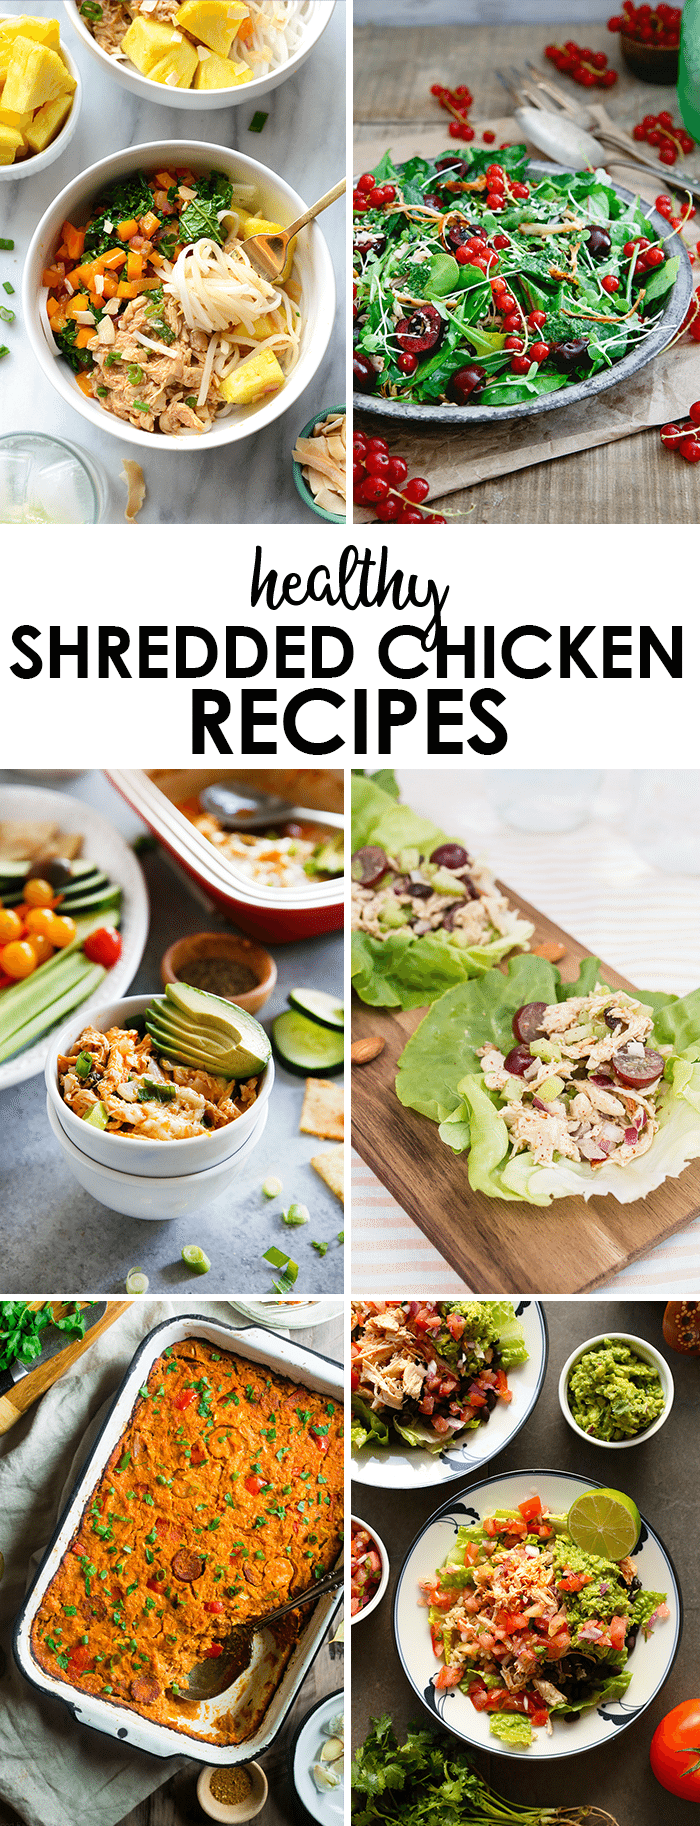 Healthy Shredded Chicken Recipes